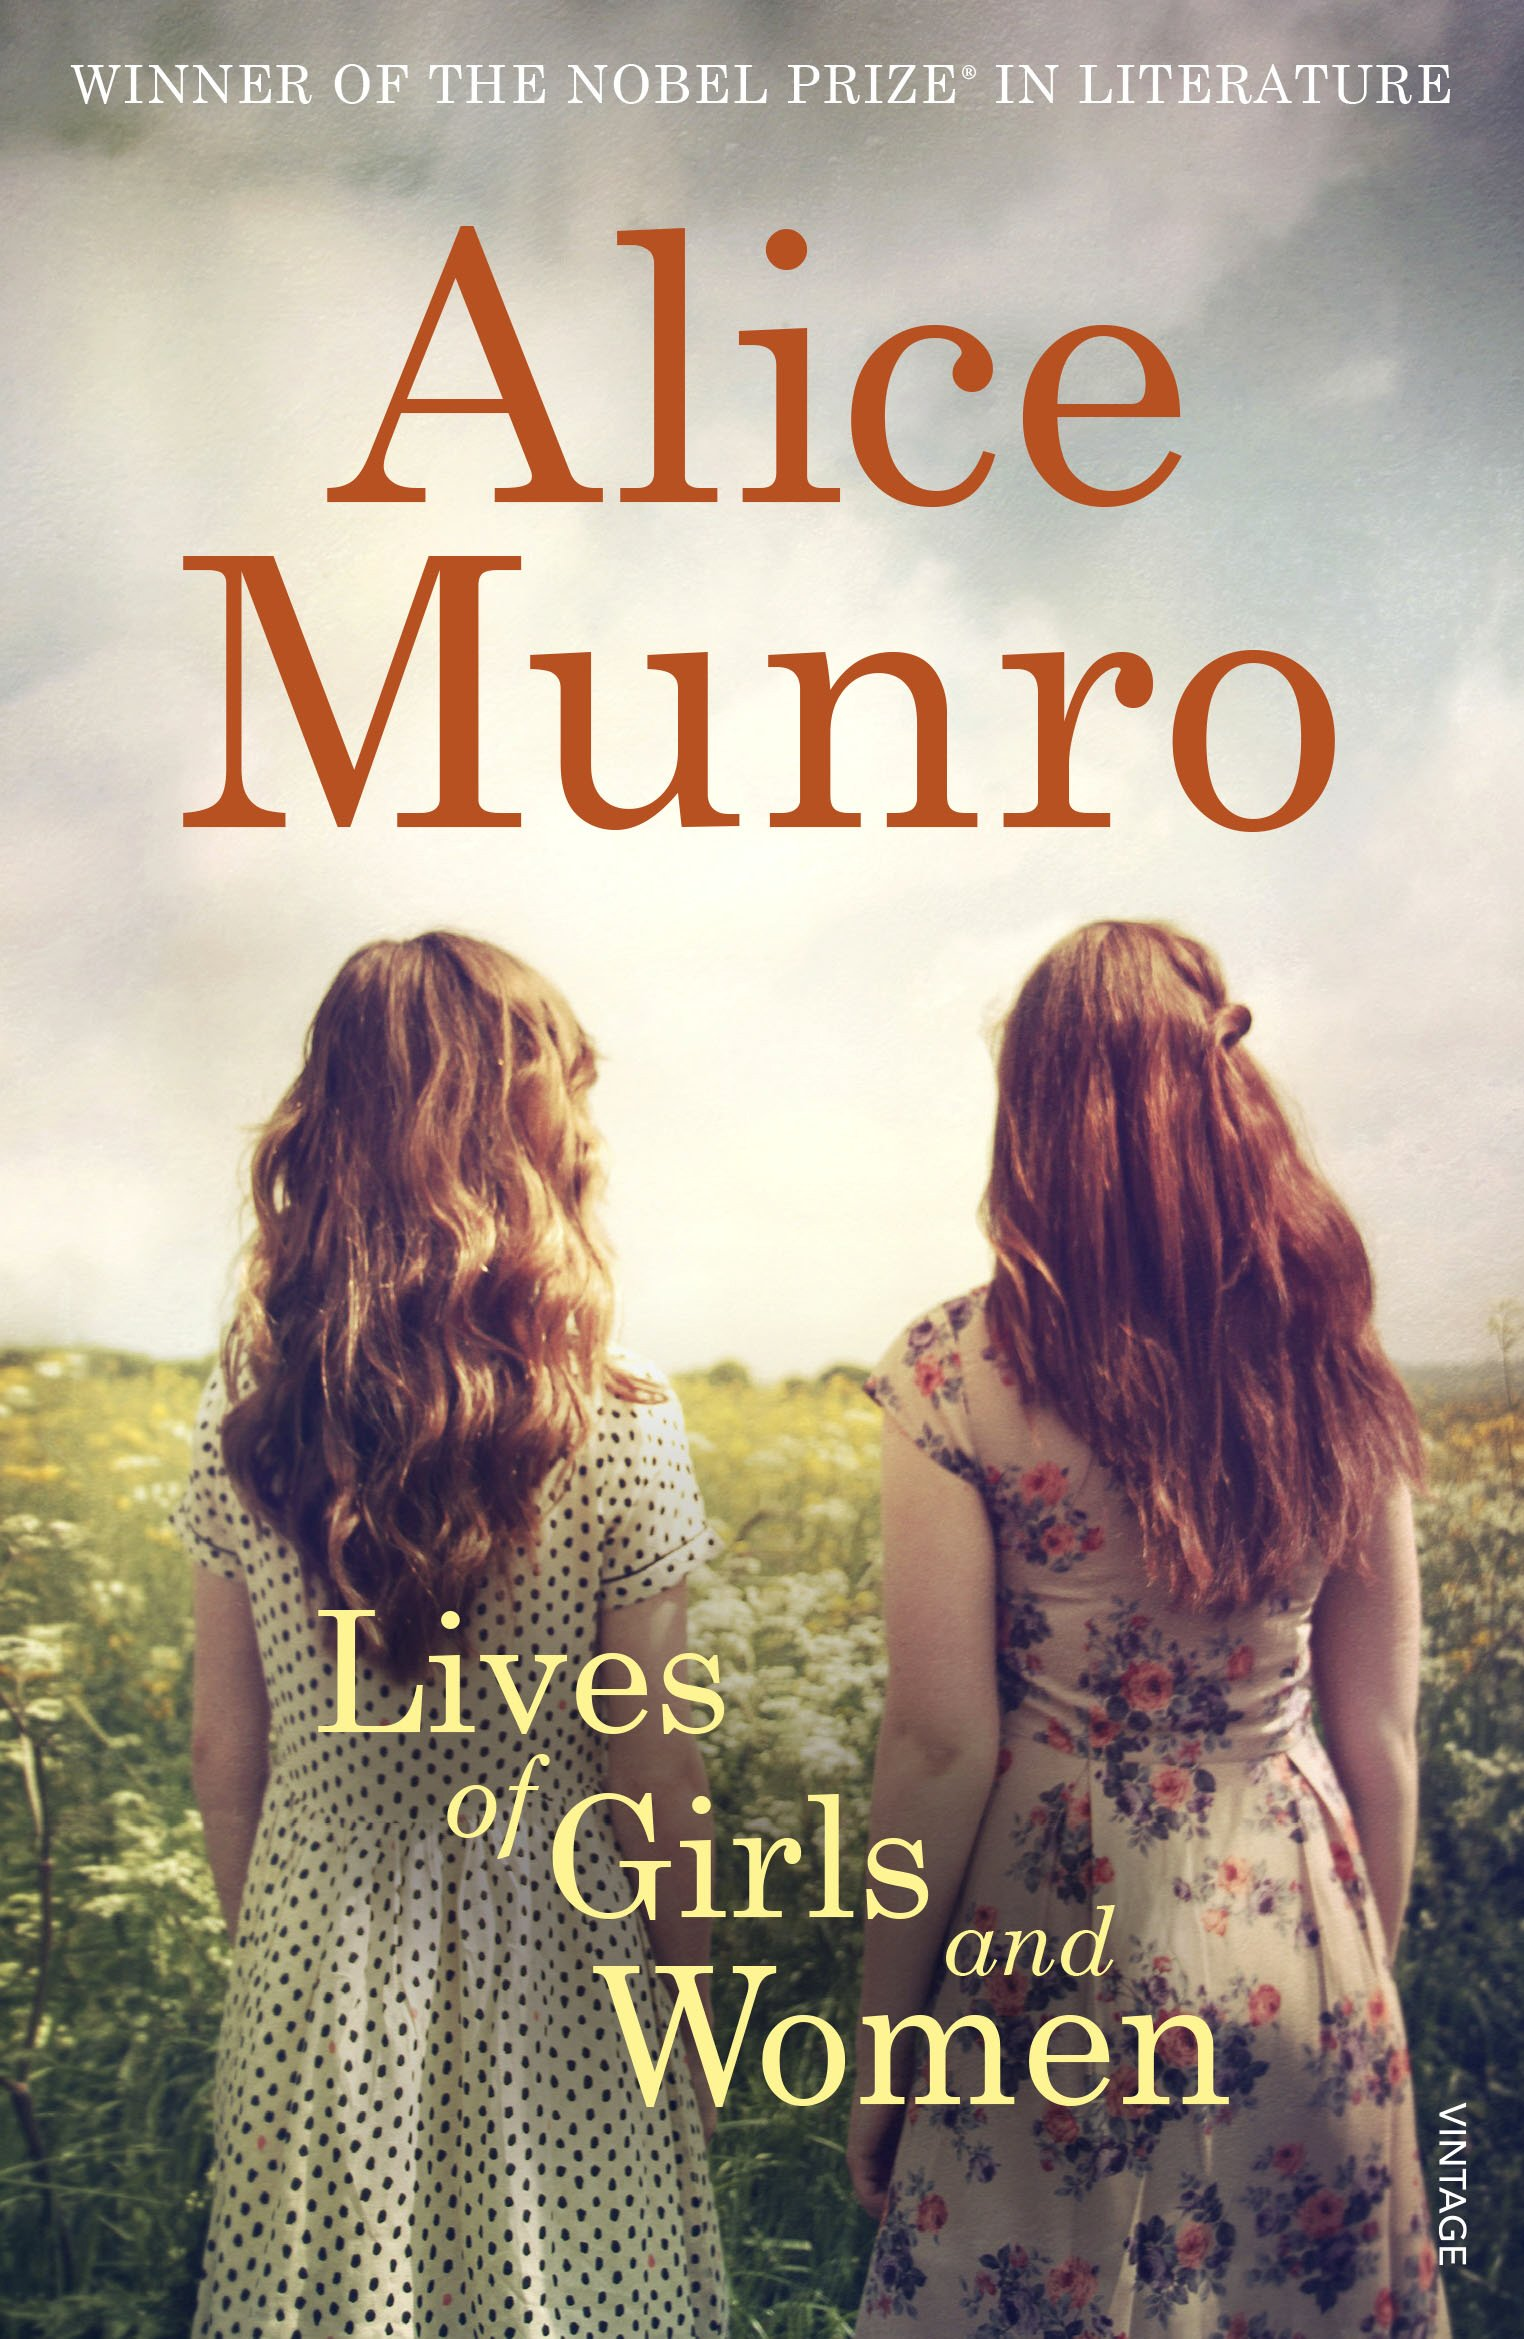 Lives Of Girls And Women: Amazon.es: Alice Munro: Libros en idiomas extranjeros